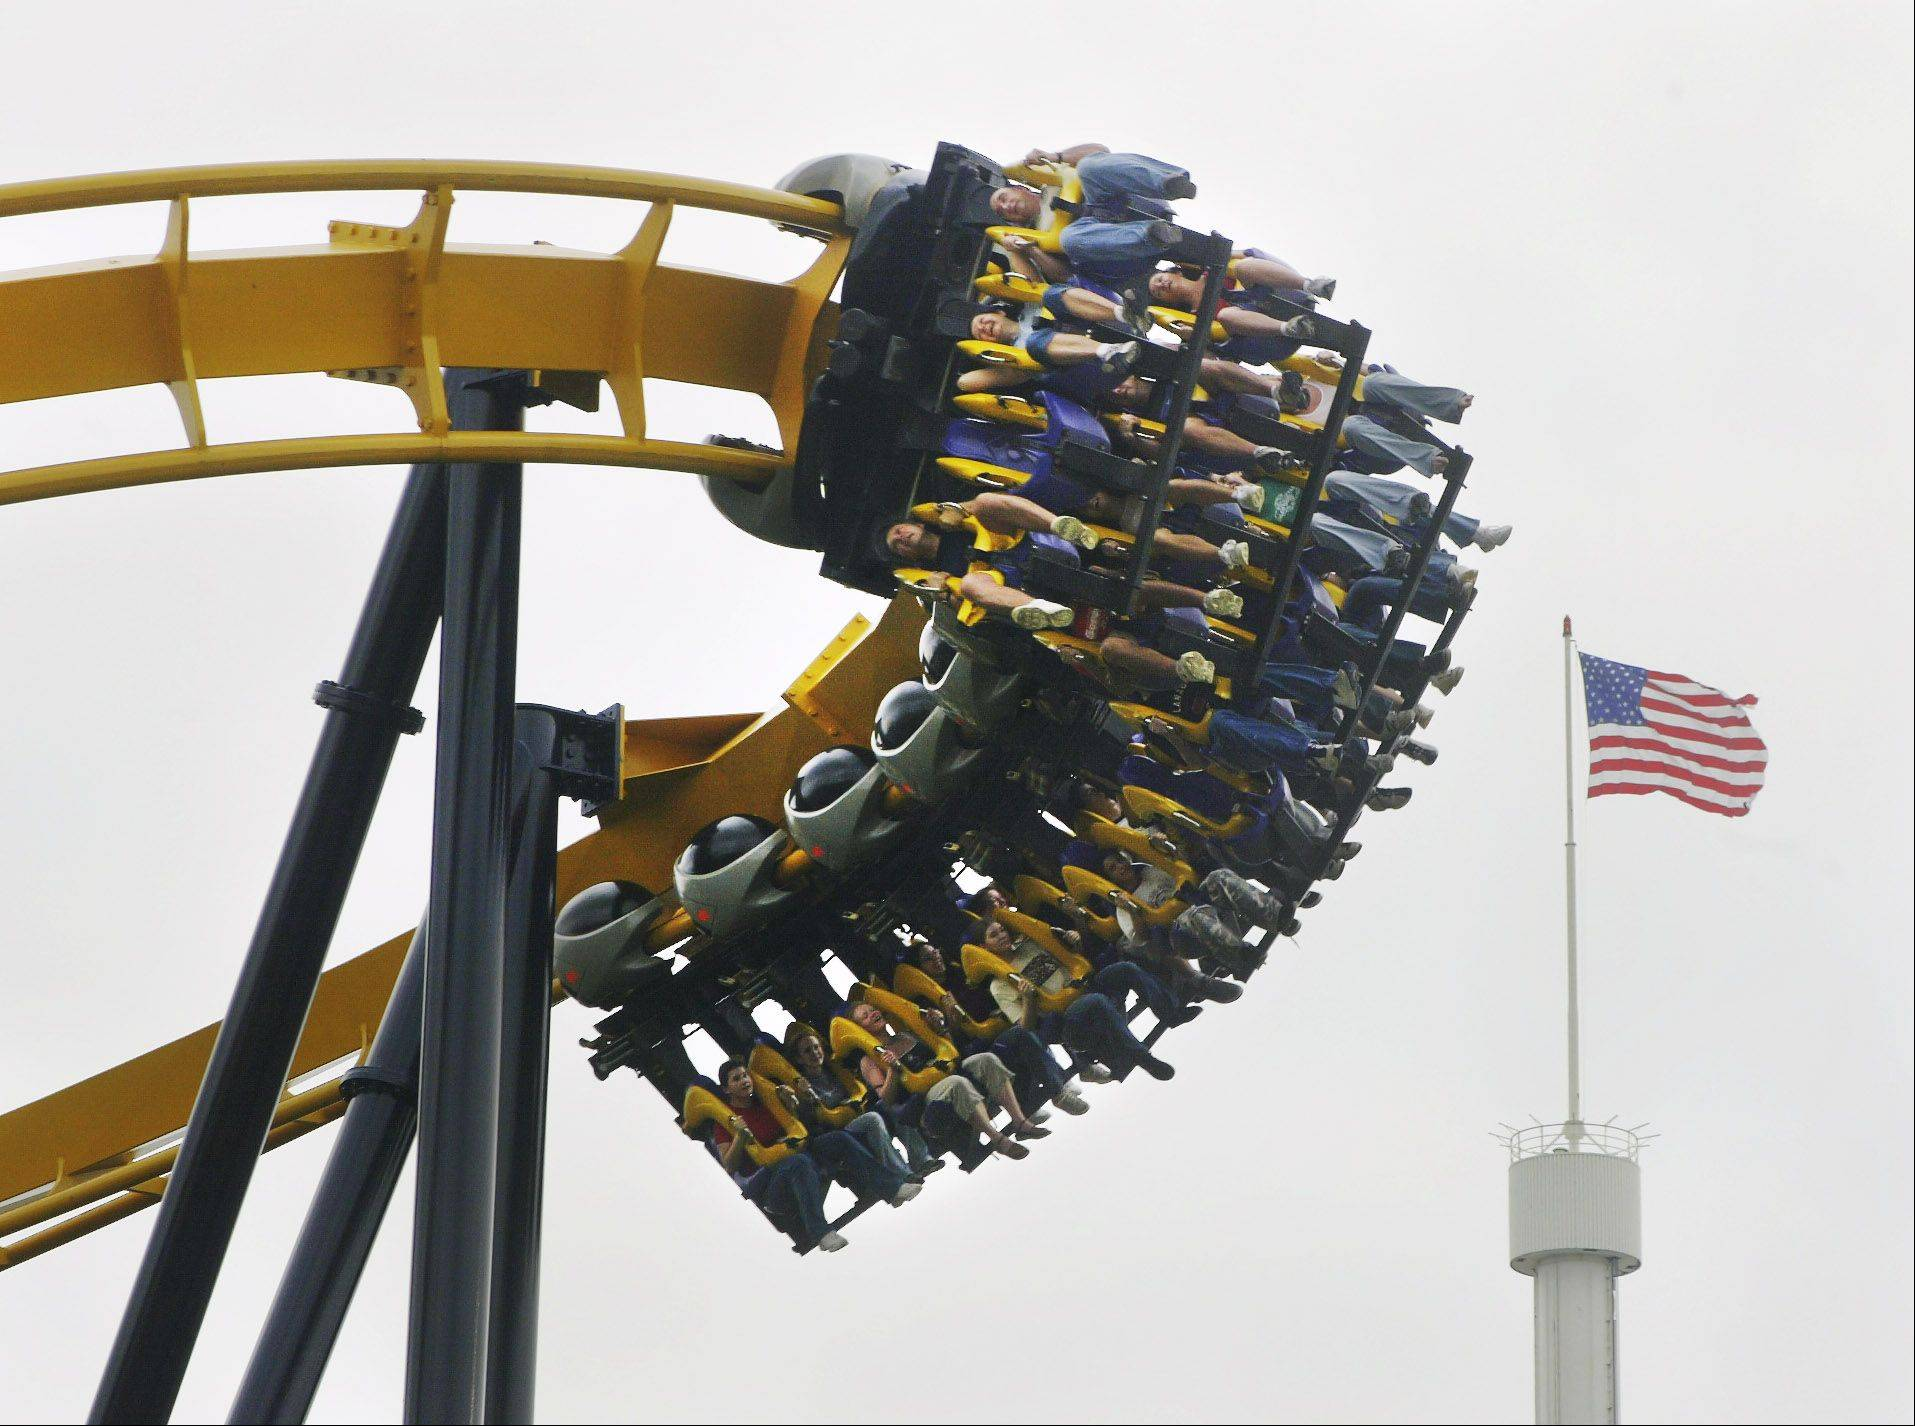 Batman the Ride roller coaster at Six Flags Great America in Gurnee.